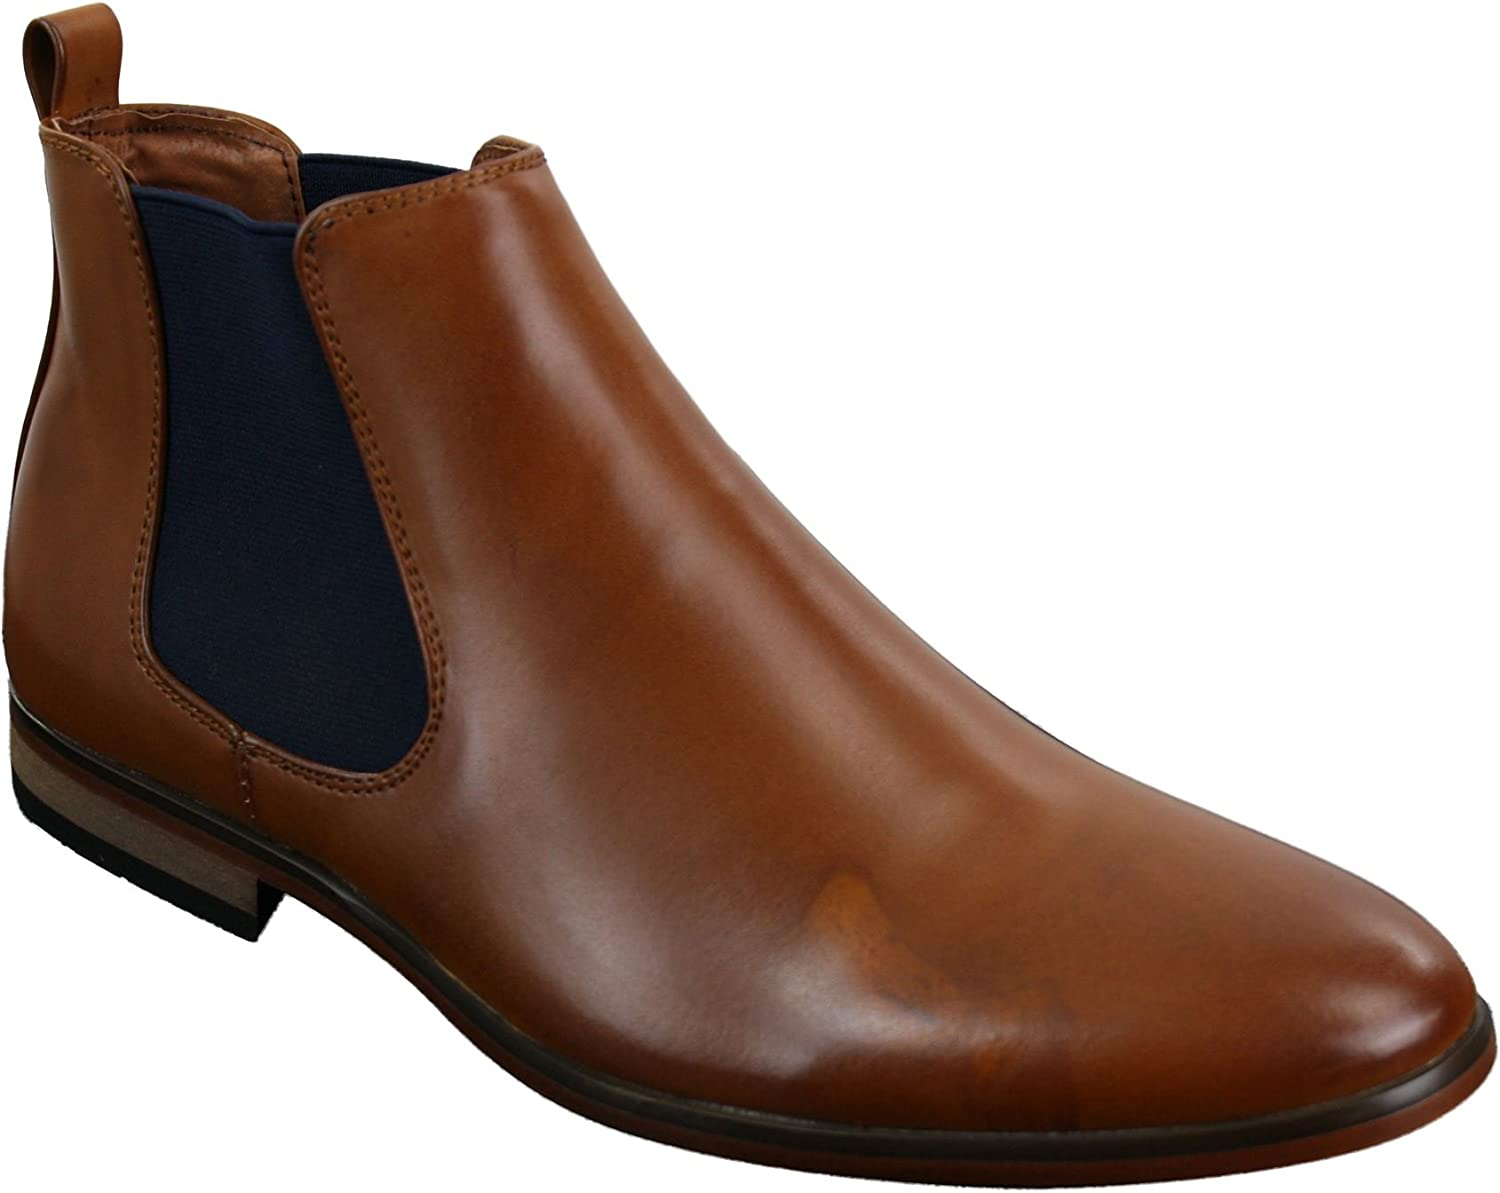 Leather Chelsea Boots Smart Casual Slip